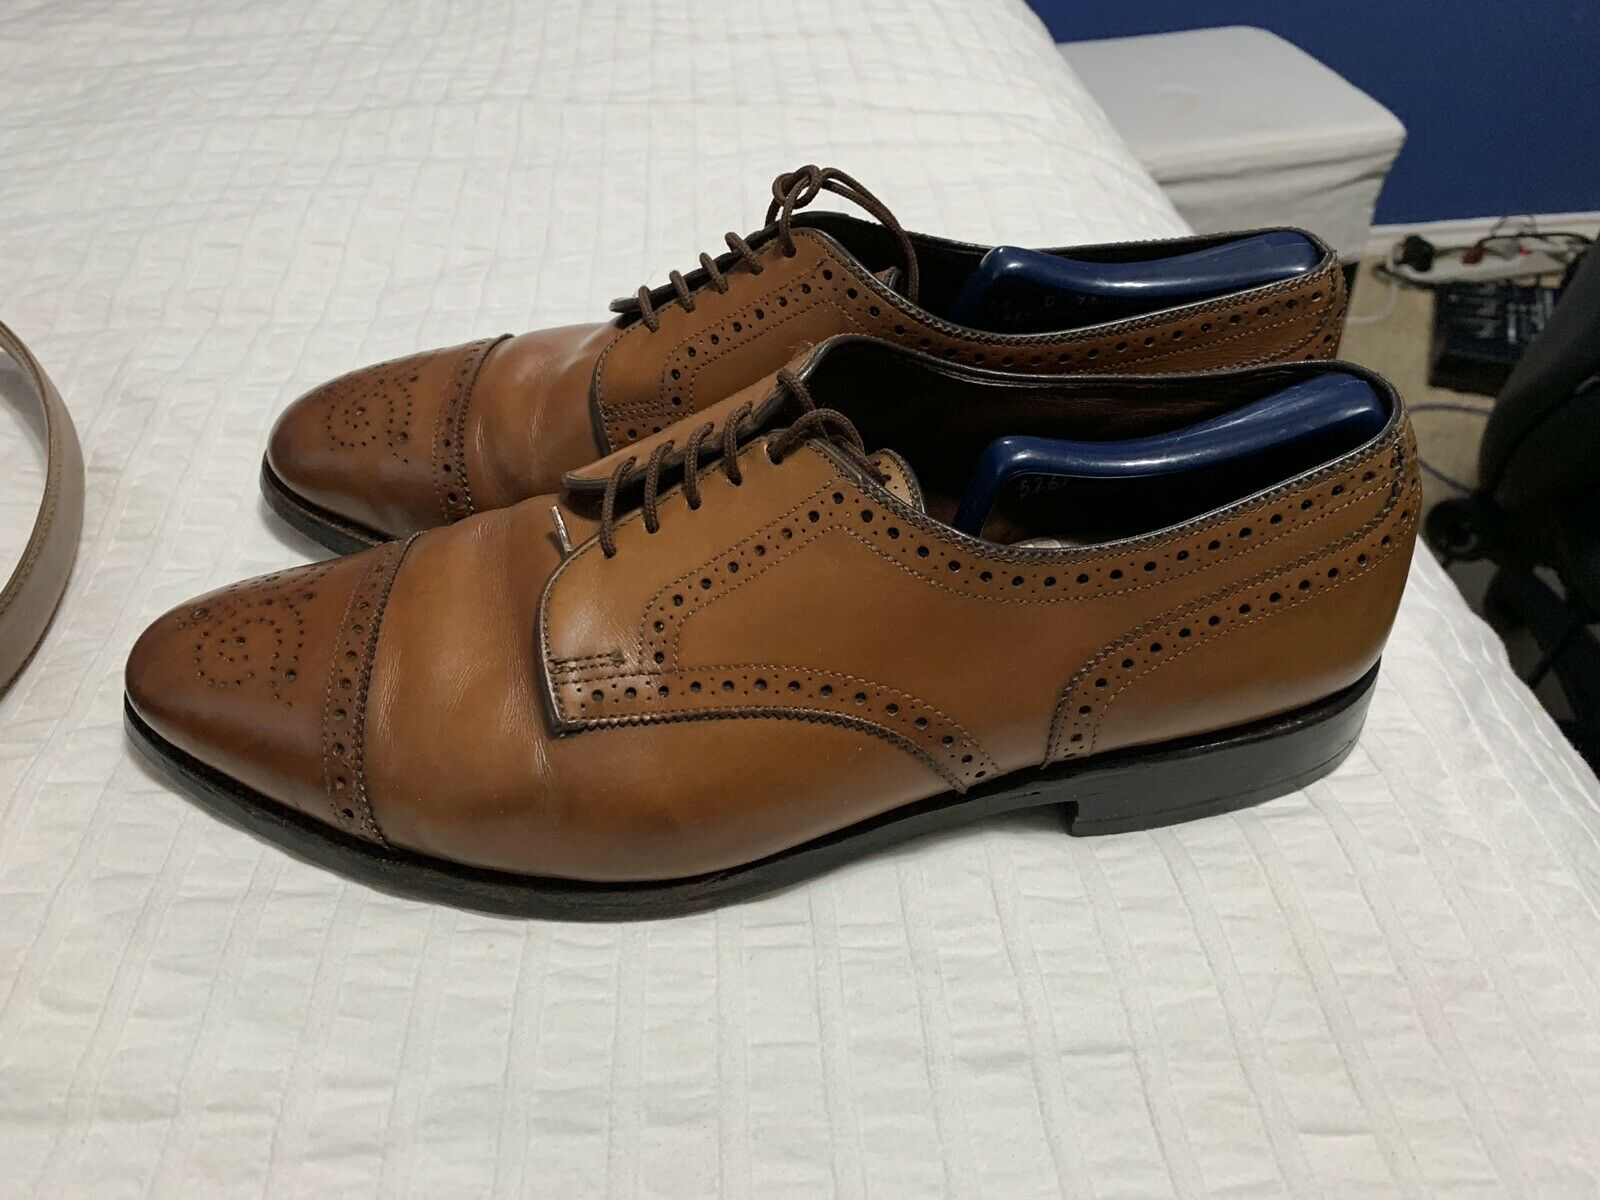 ALLEN EDMONDS Noyer SANFORD Bout D'Aile Derbies 12 D